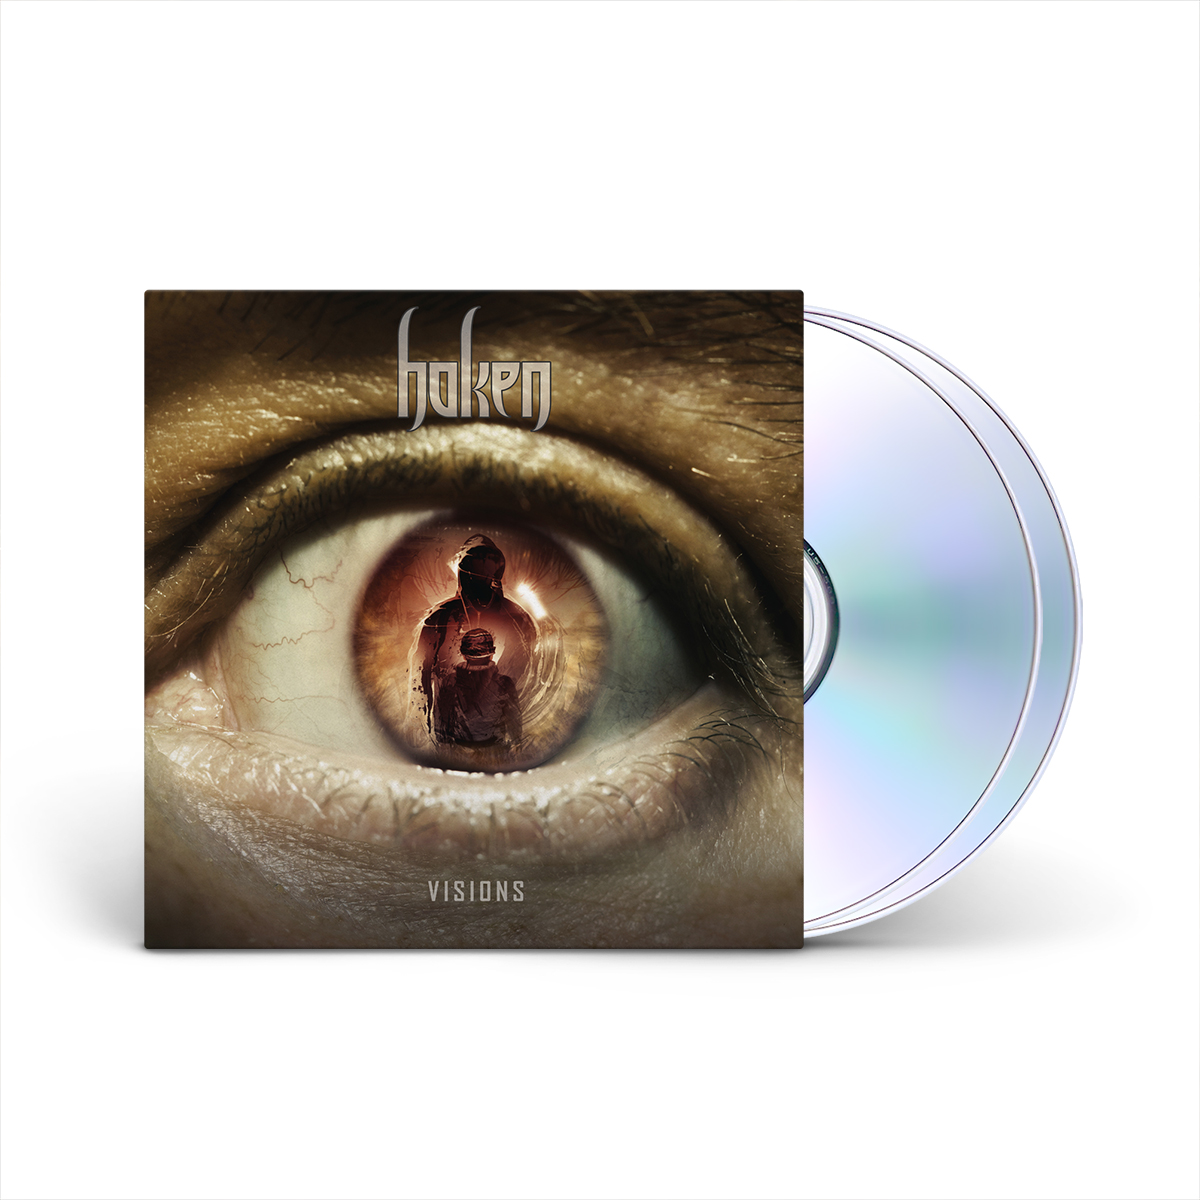 Haken - Visions (Re-issue 2017) Special Edition 2 CD Set